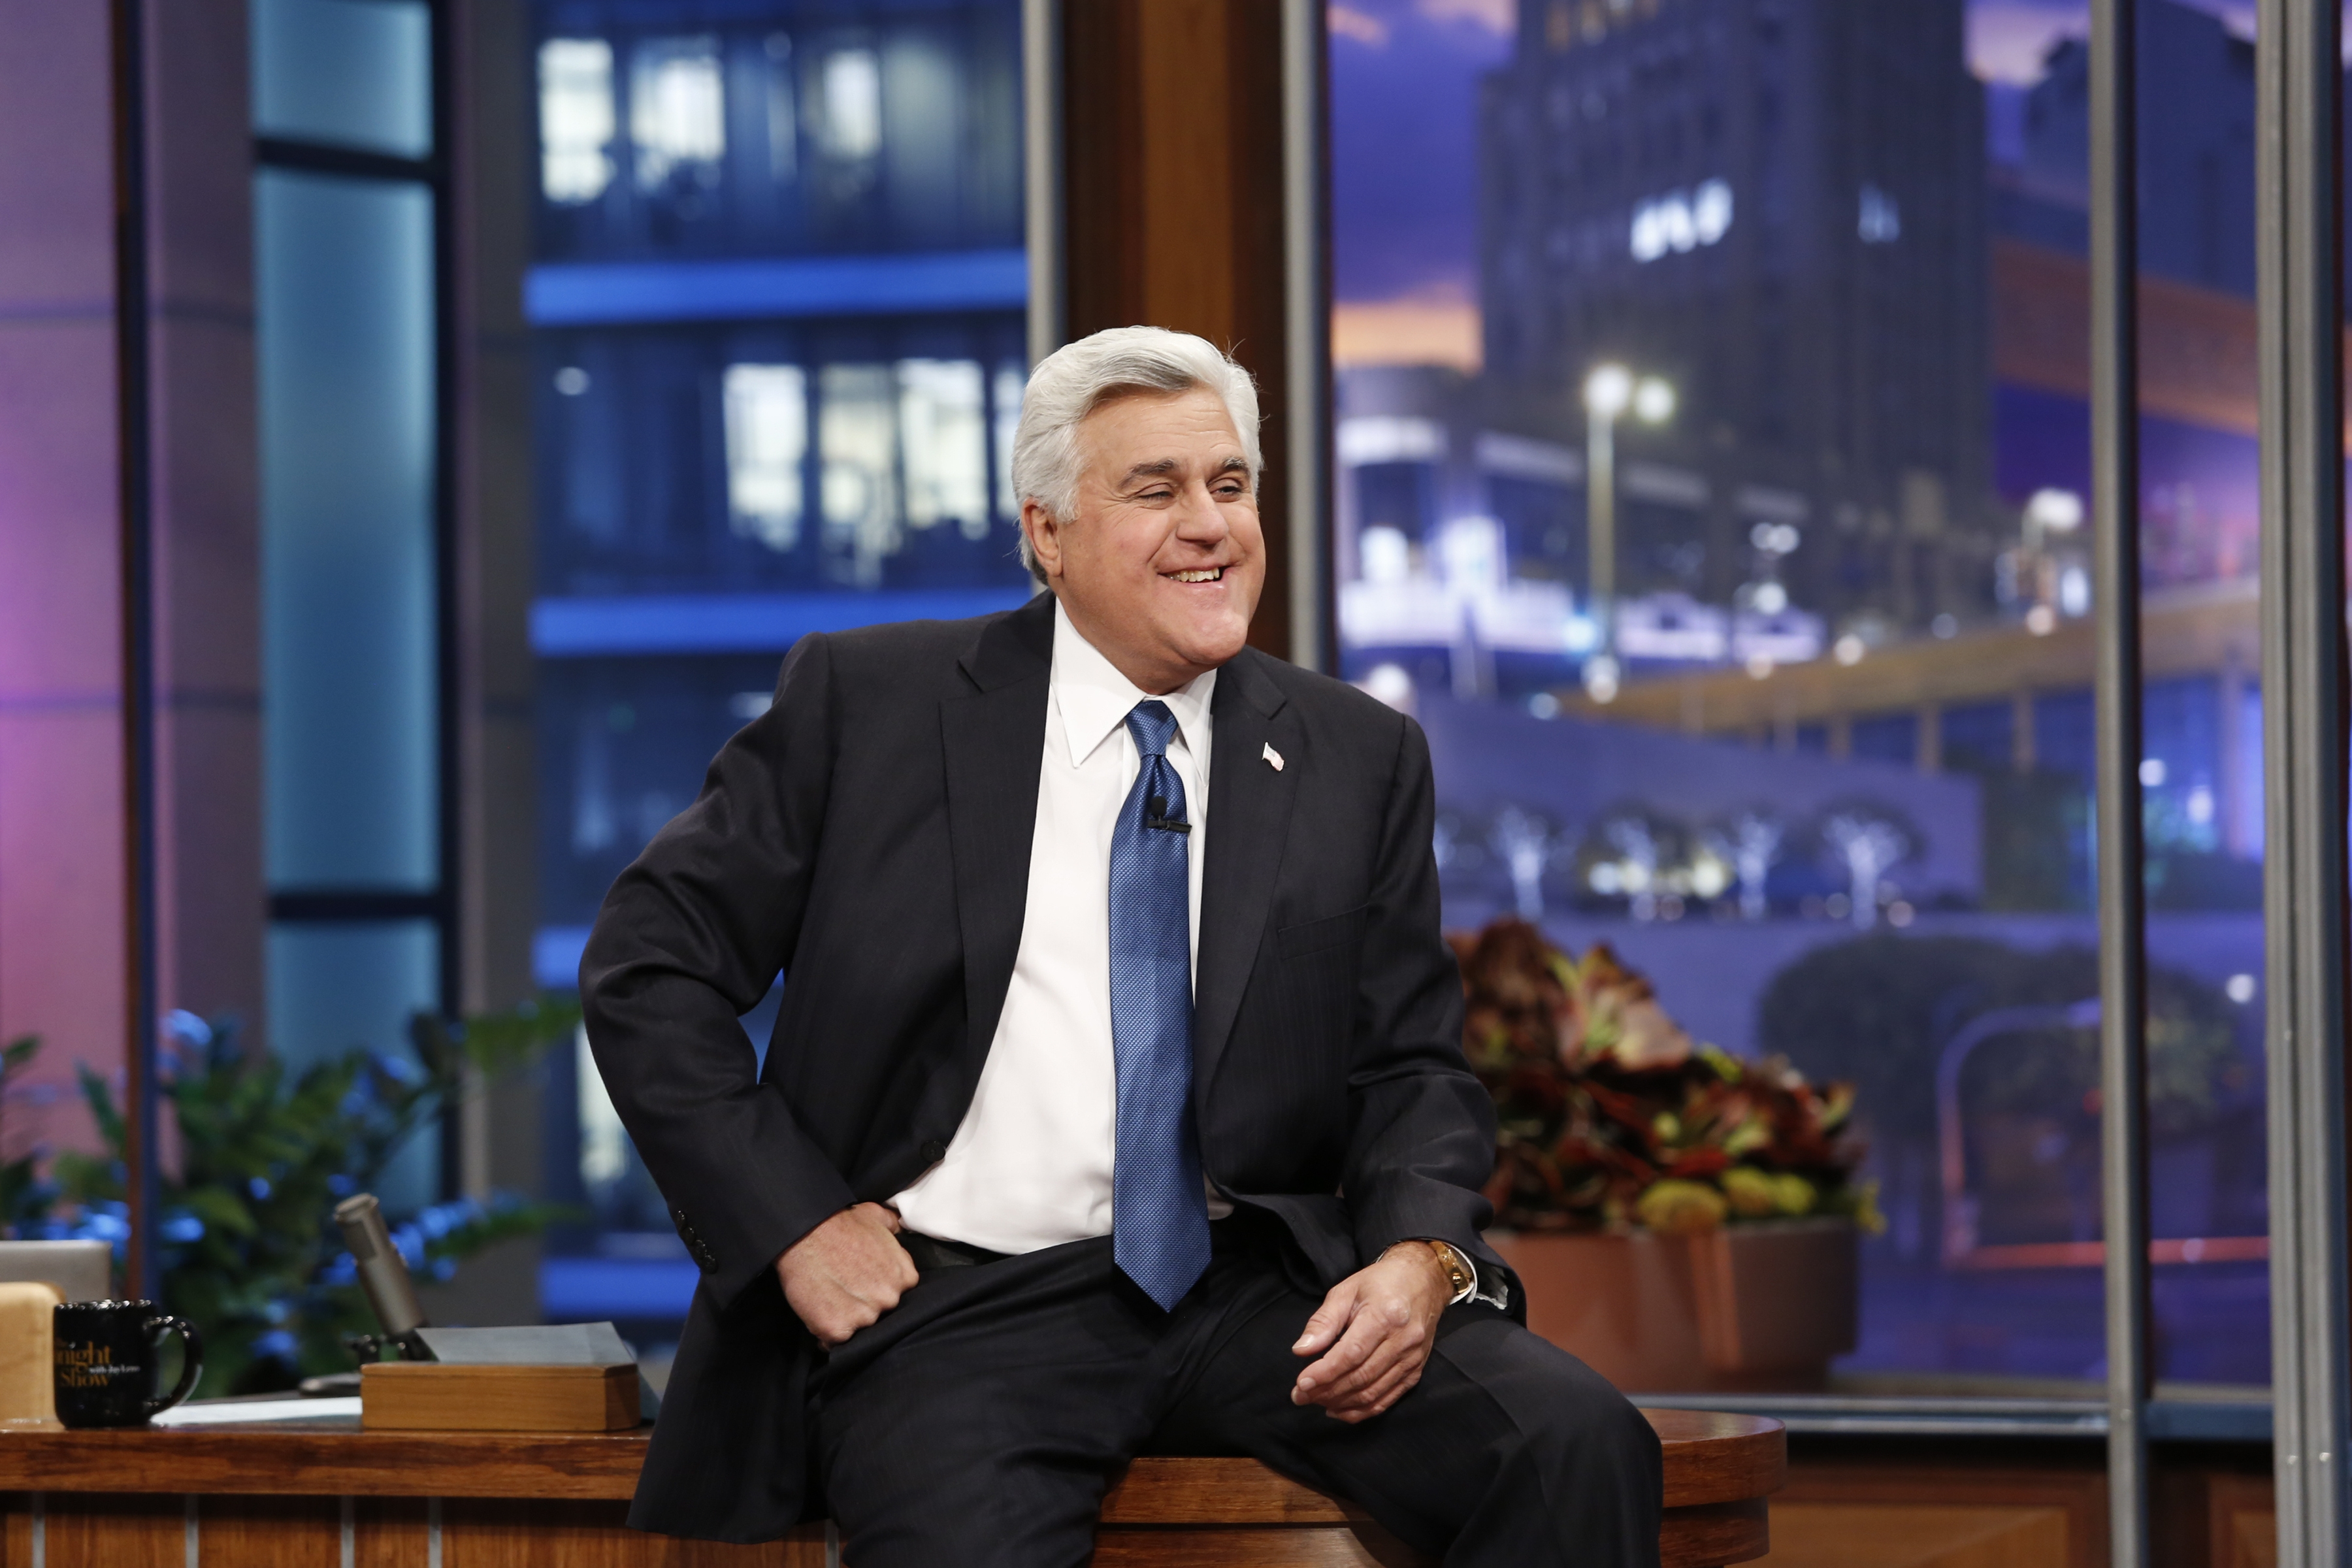 Jay Leno will be given the Mark Twain Prize for American Humor, the nation's top humor award.